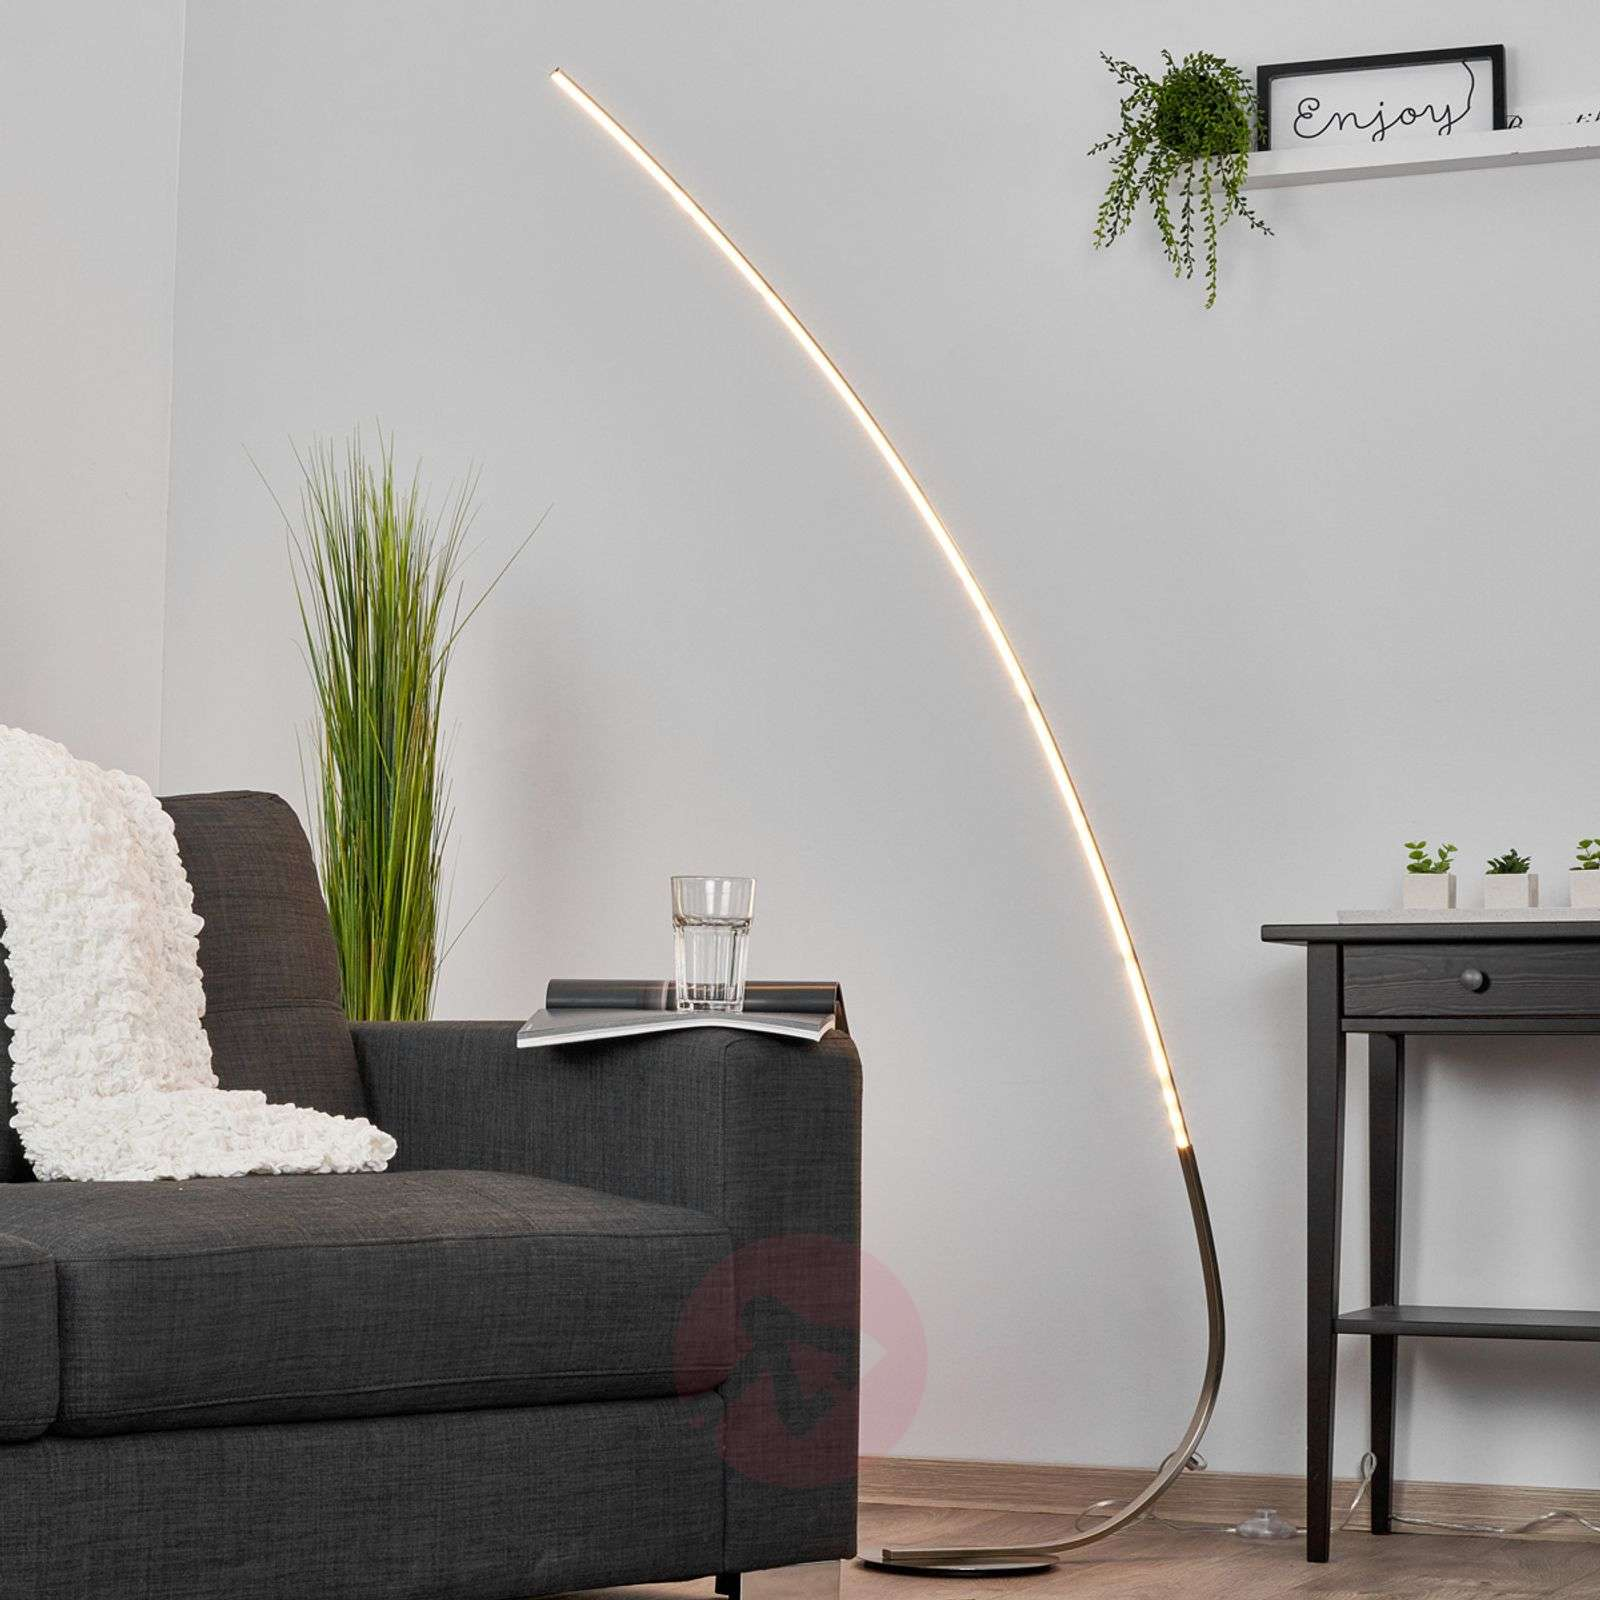 Minimalistic LED floor lamp Madeleine-9985035-01